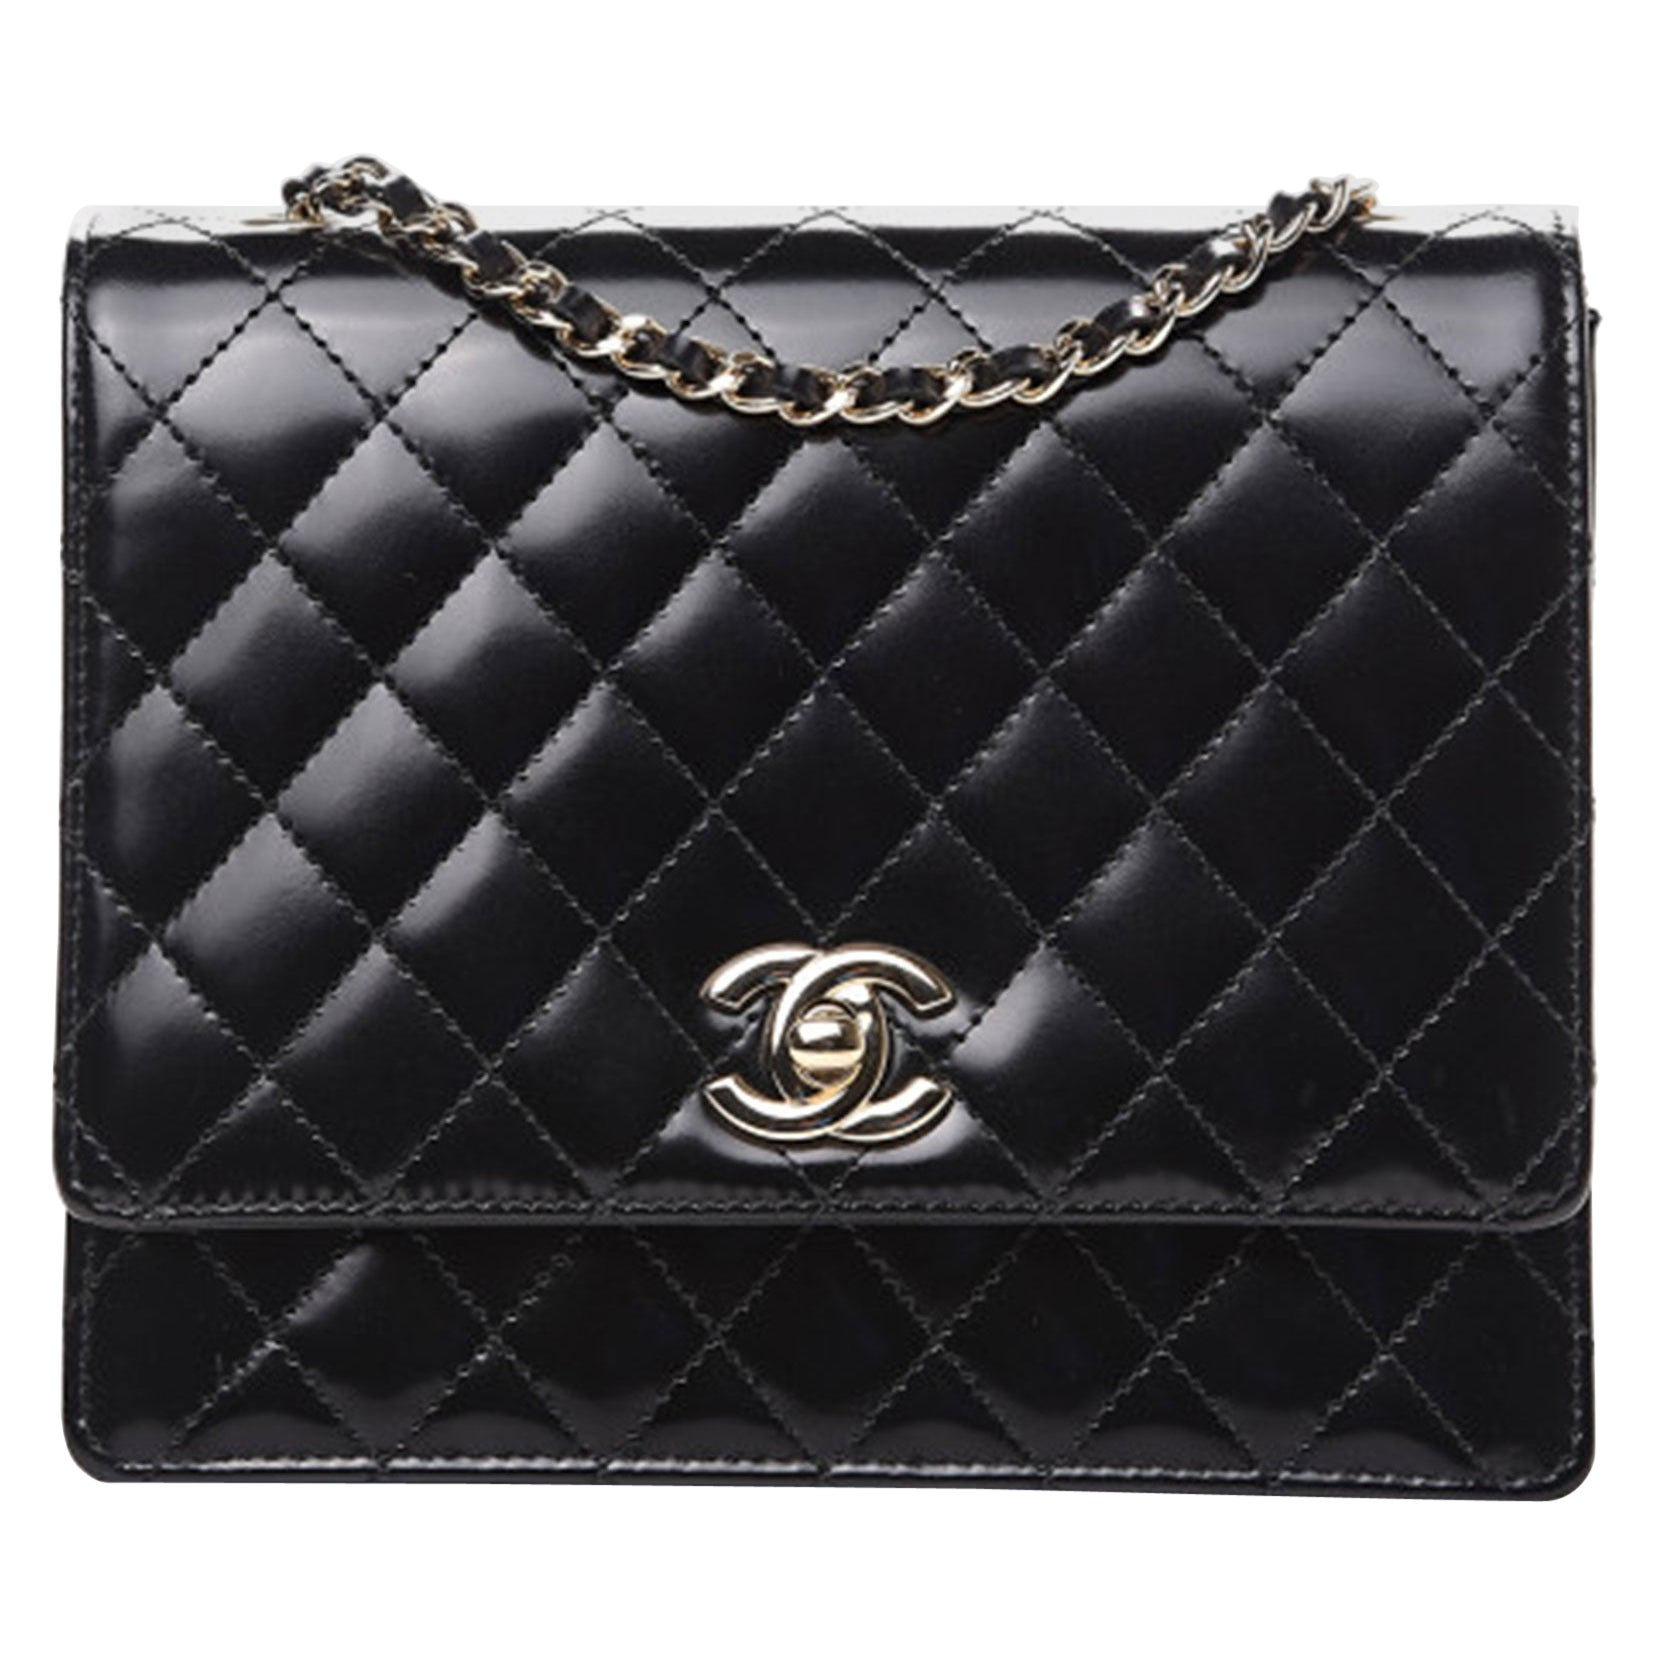 Chanel Black Quilted Rare Mini Classic Patent Flap Bag Silver Hardware Vintage